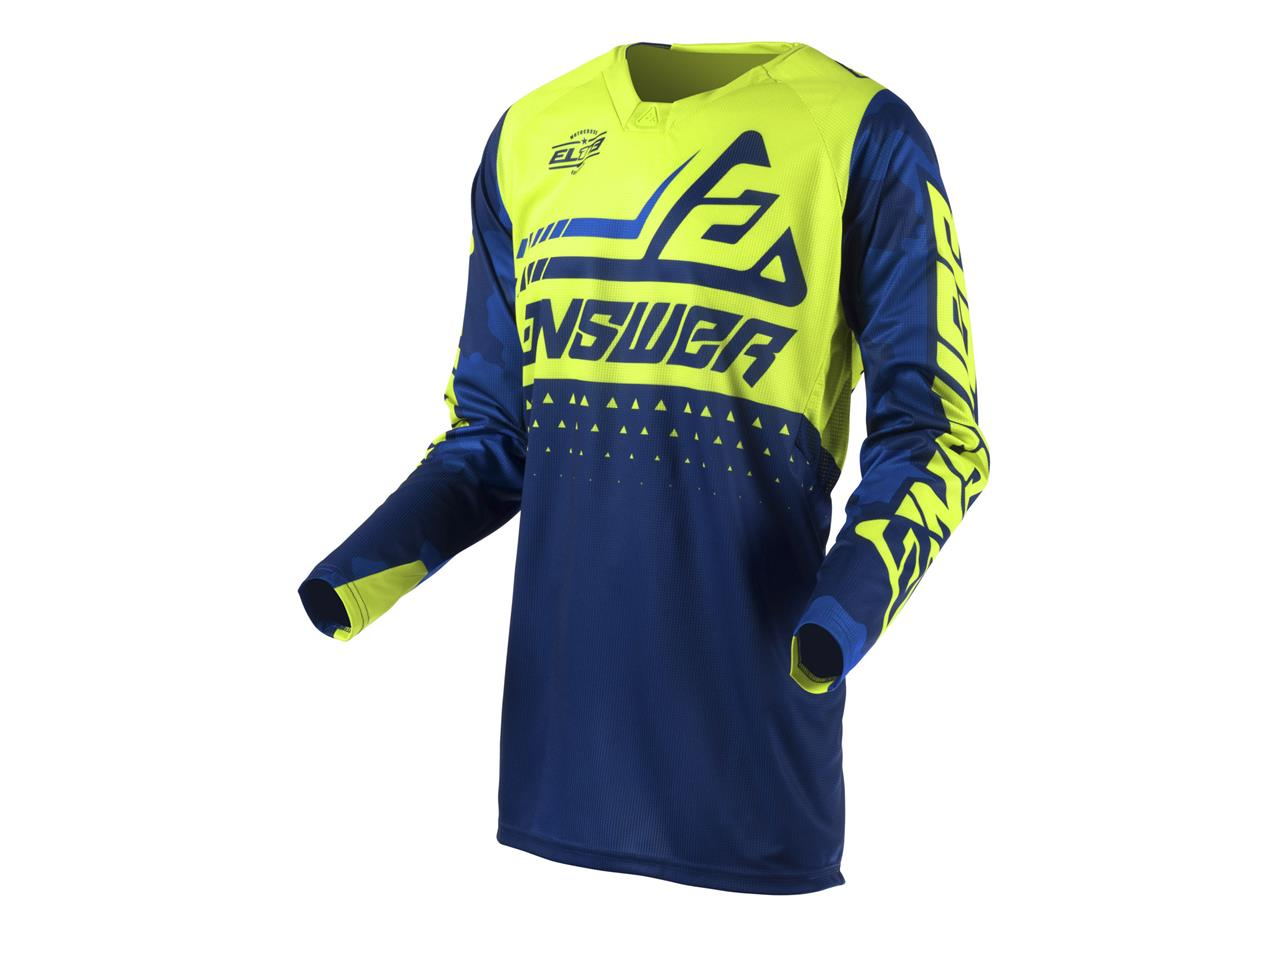 Maillot answer elite discord midnight hyper acid 1